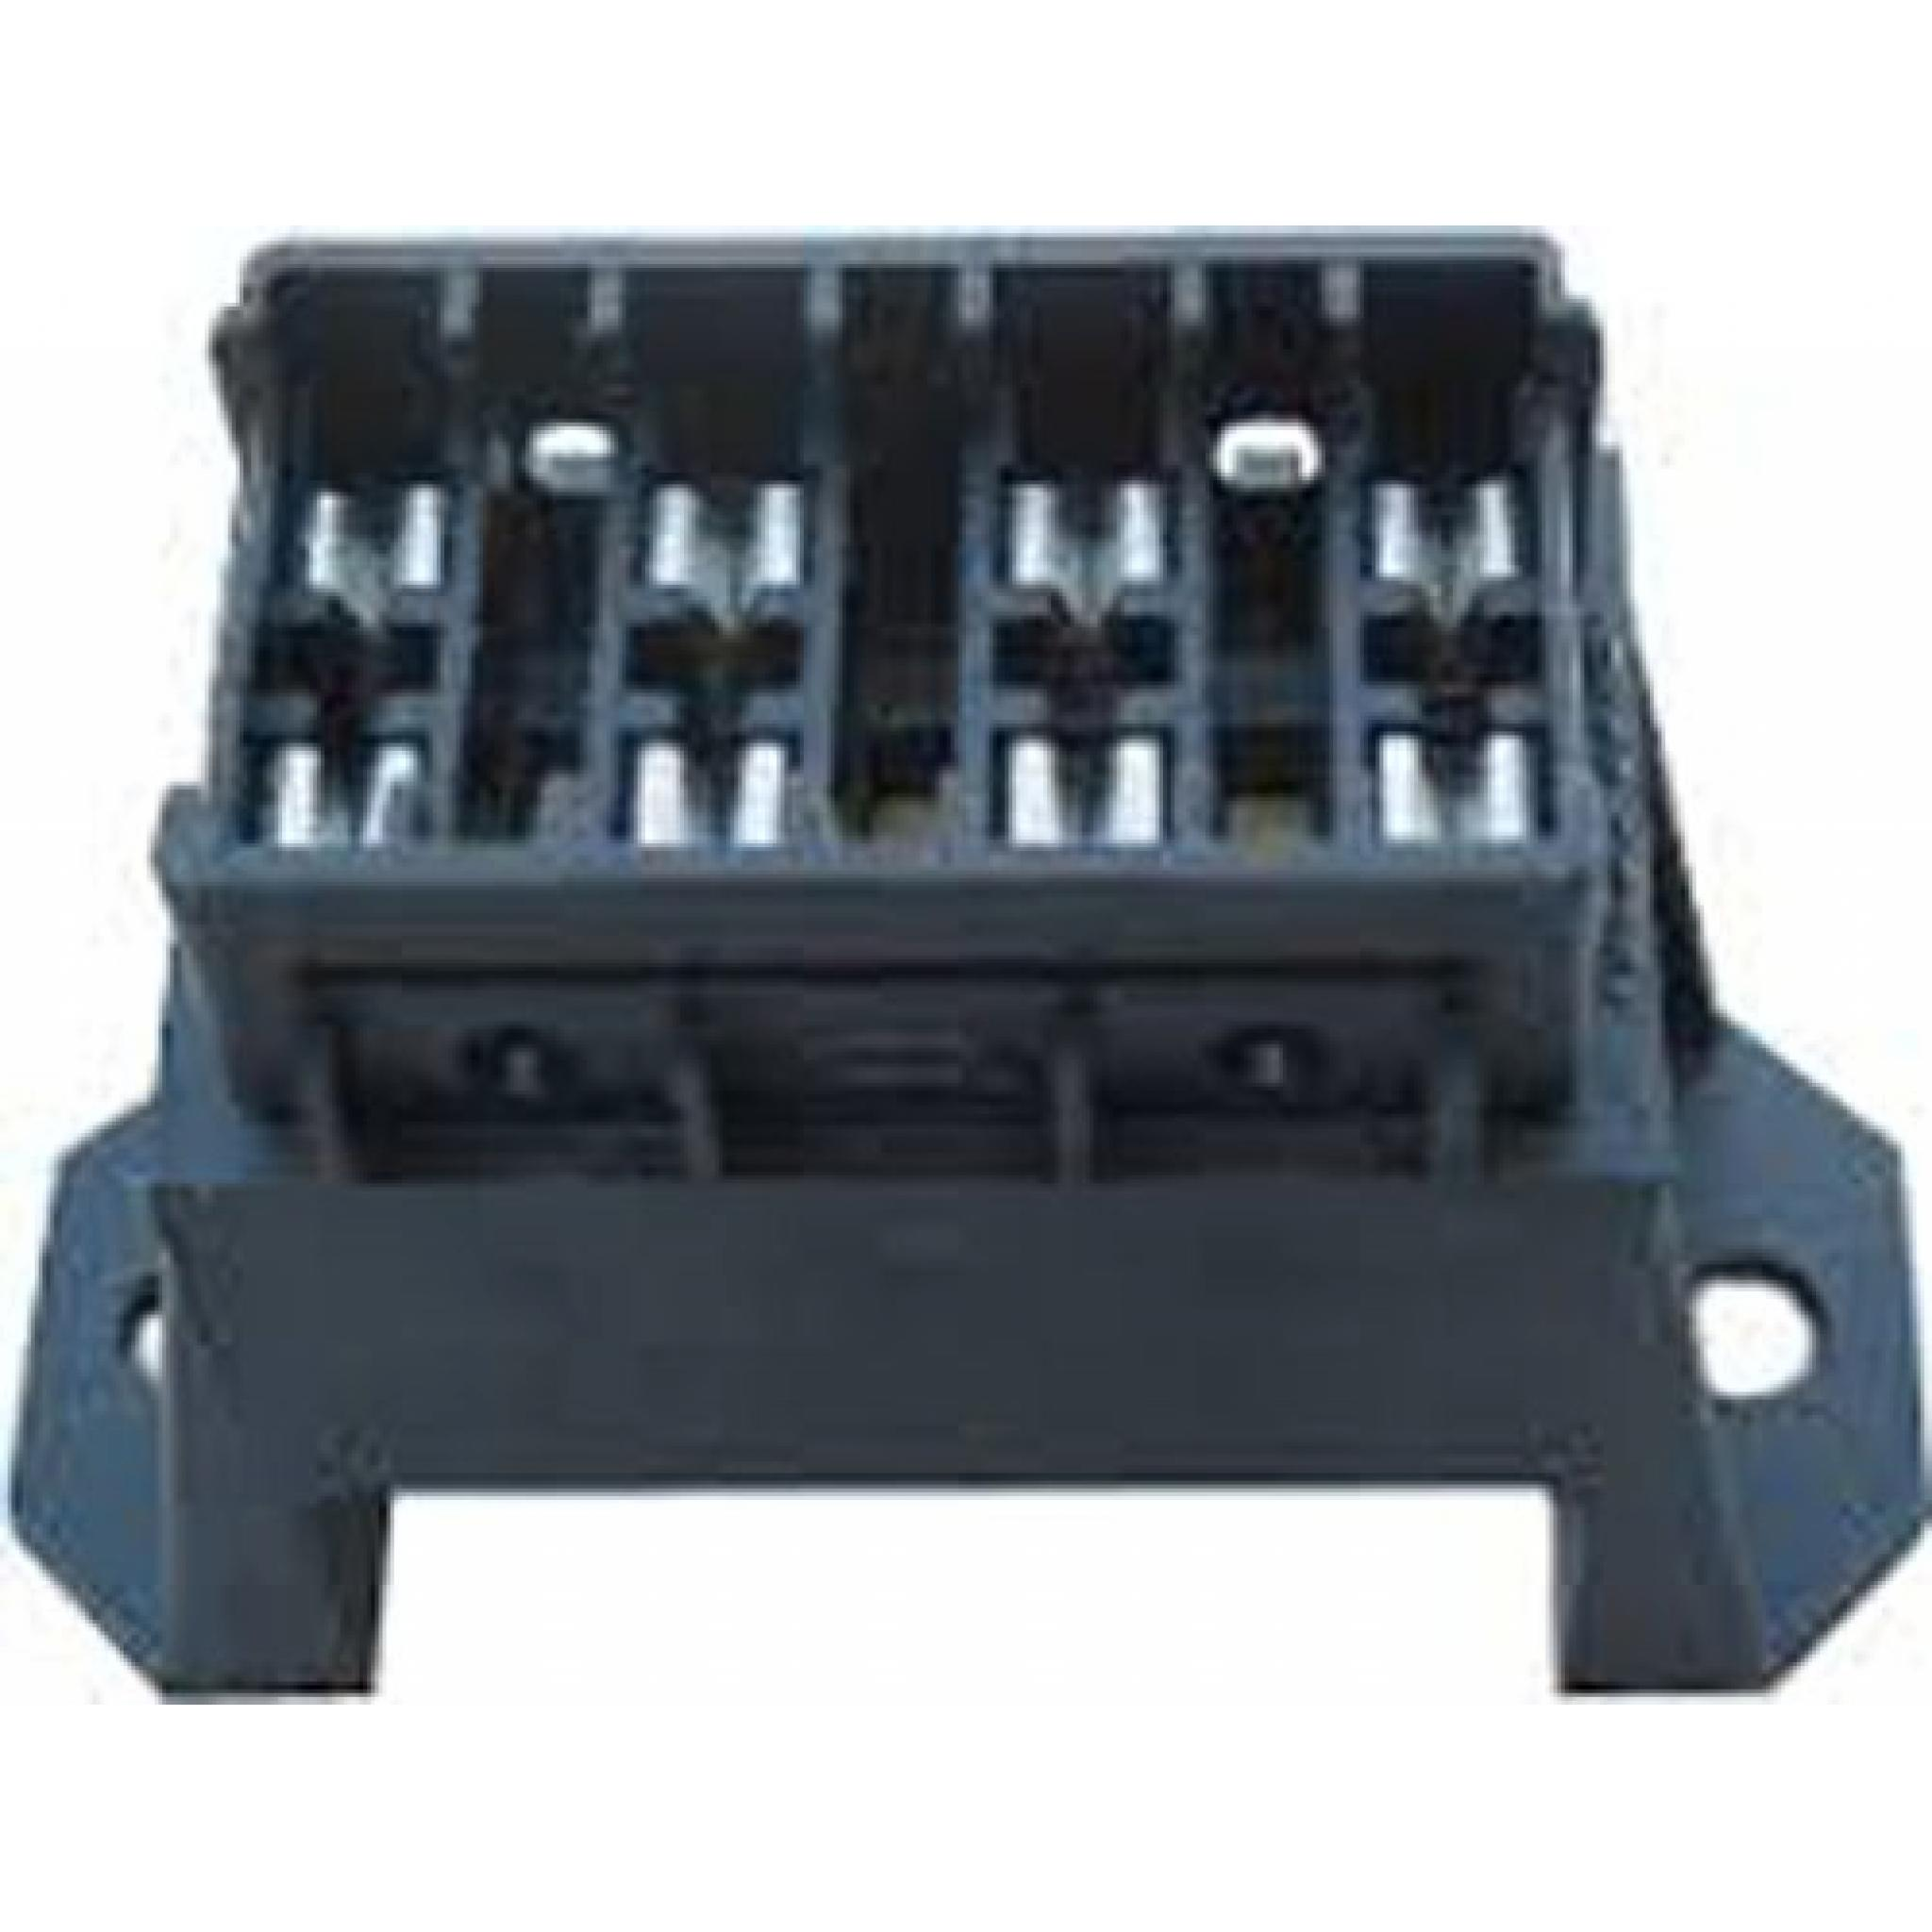 Blade Fuse Box (4 way) - Car Auto Wiring Electrical Connectors -  on